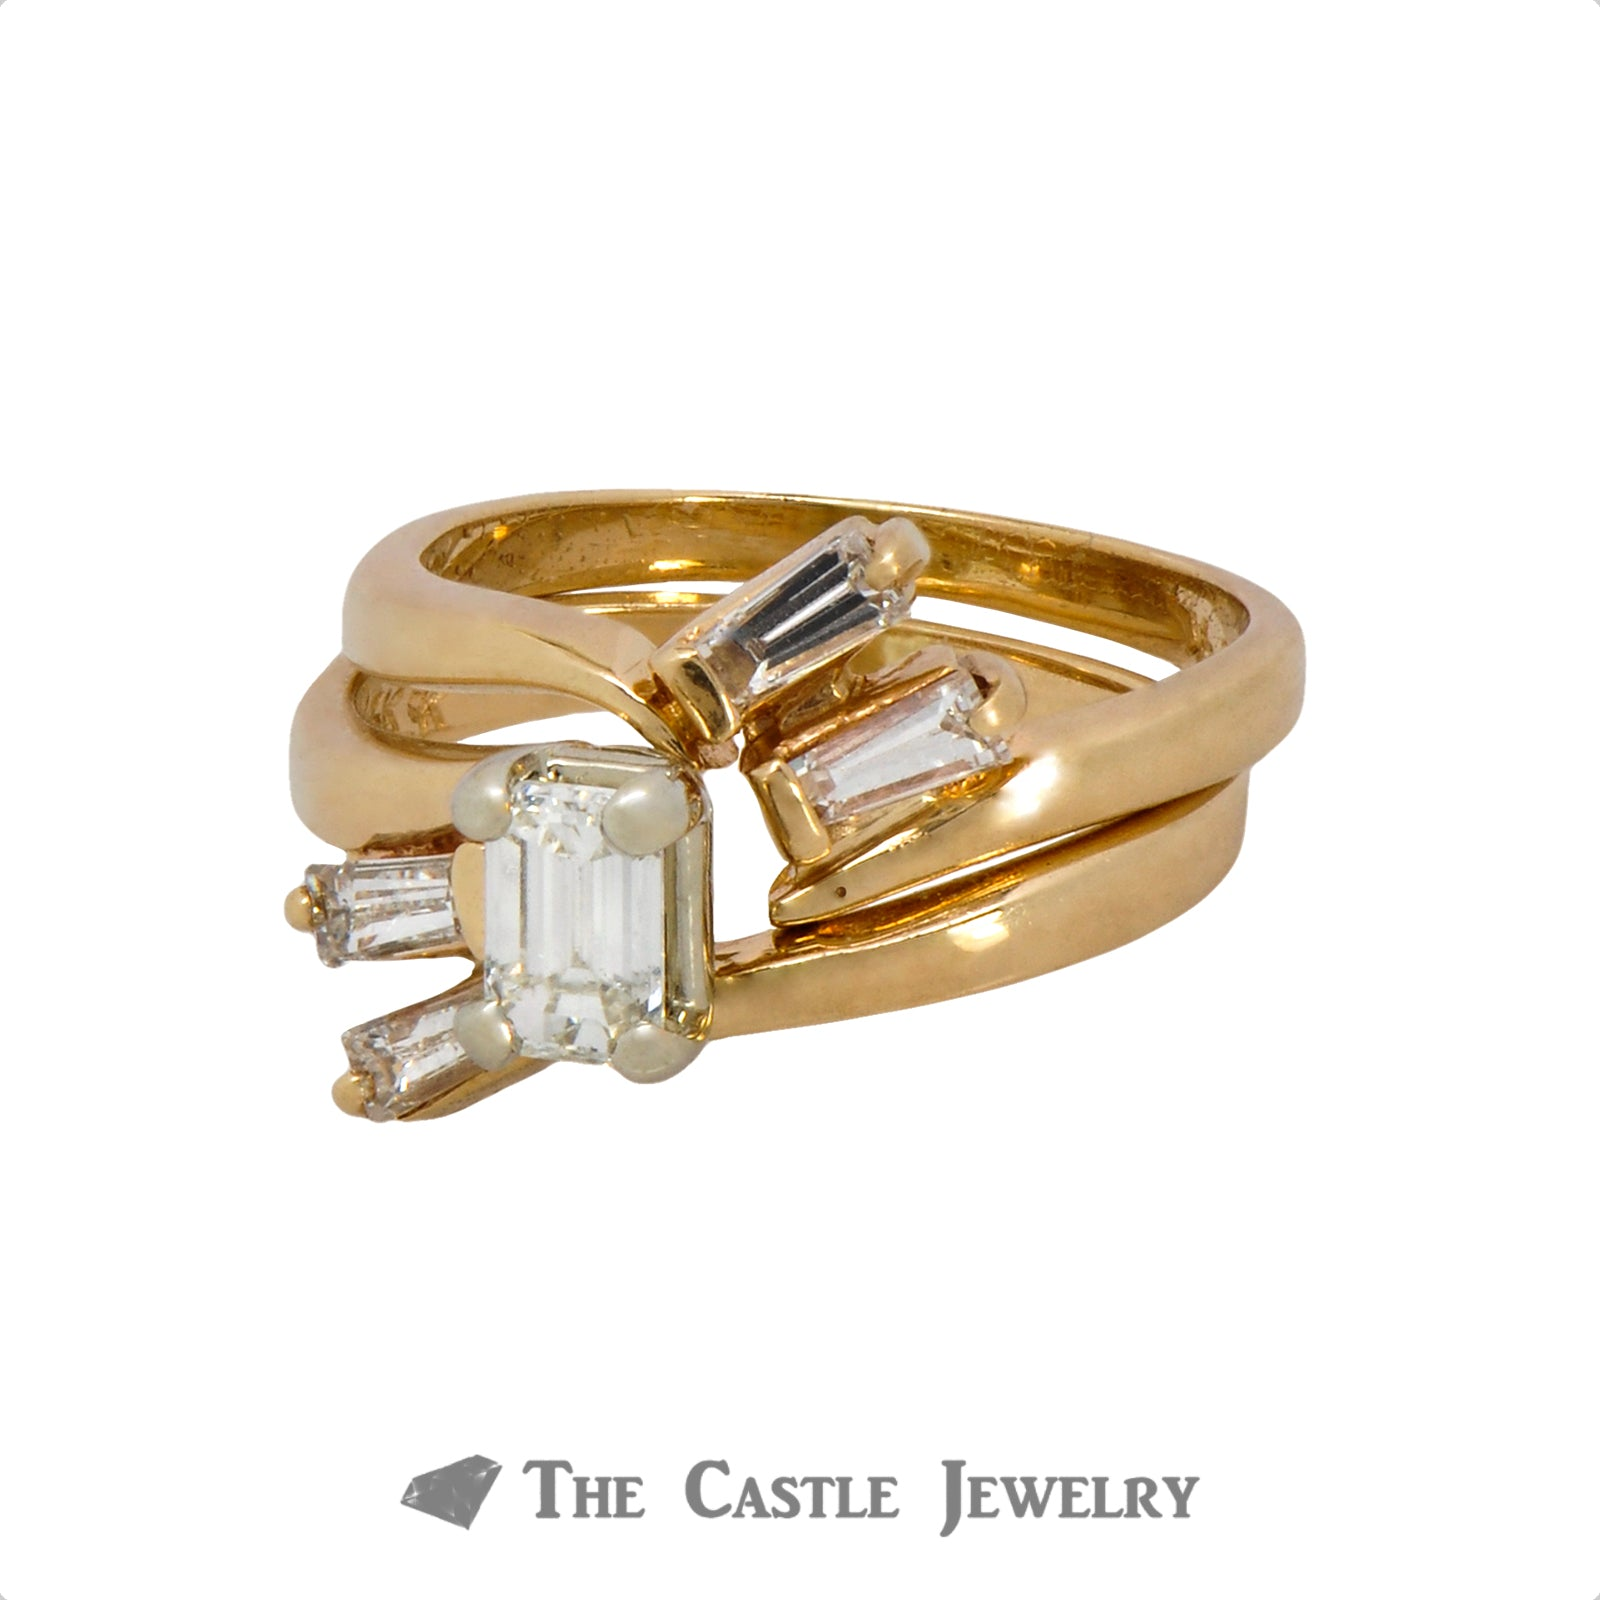 Emerald Cut Diamond Bridal Set with Baguette Diamond Accented Matching Band in 14k Yellow Gold-2